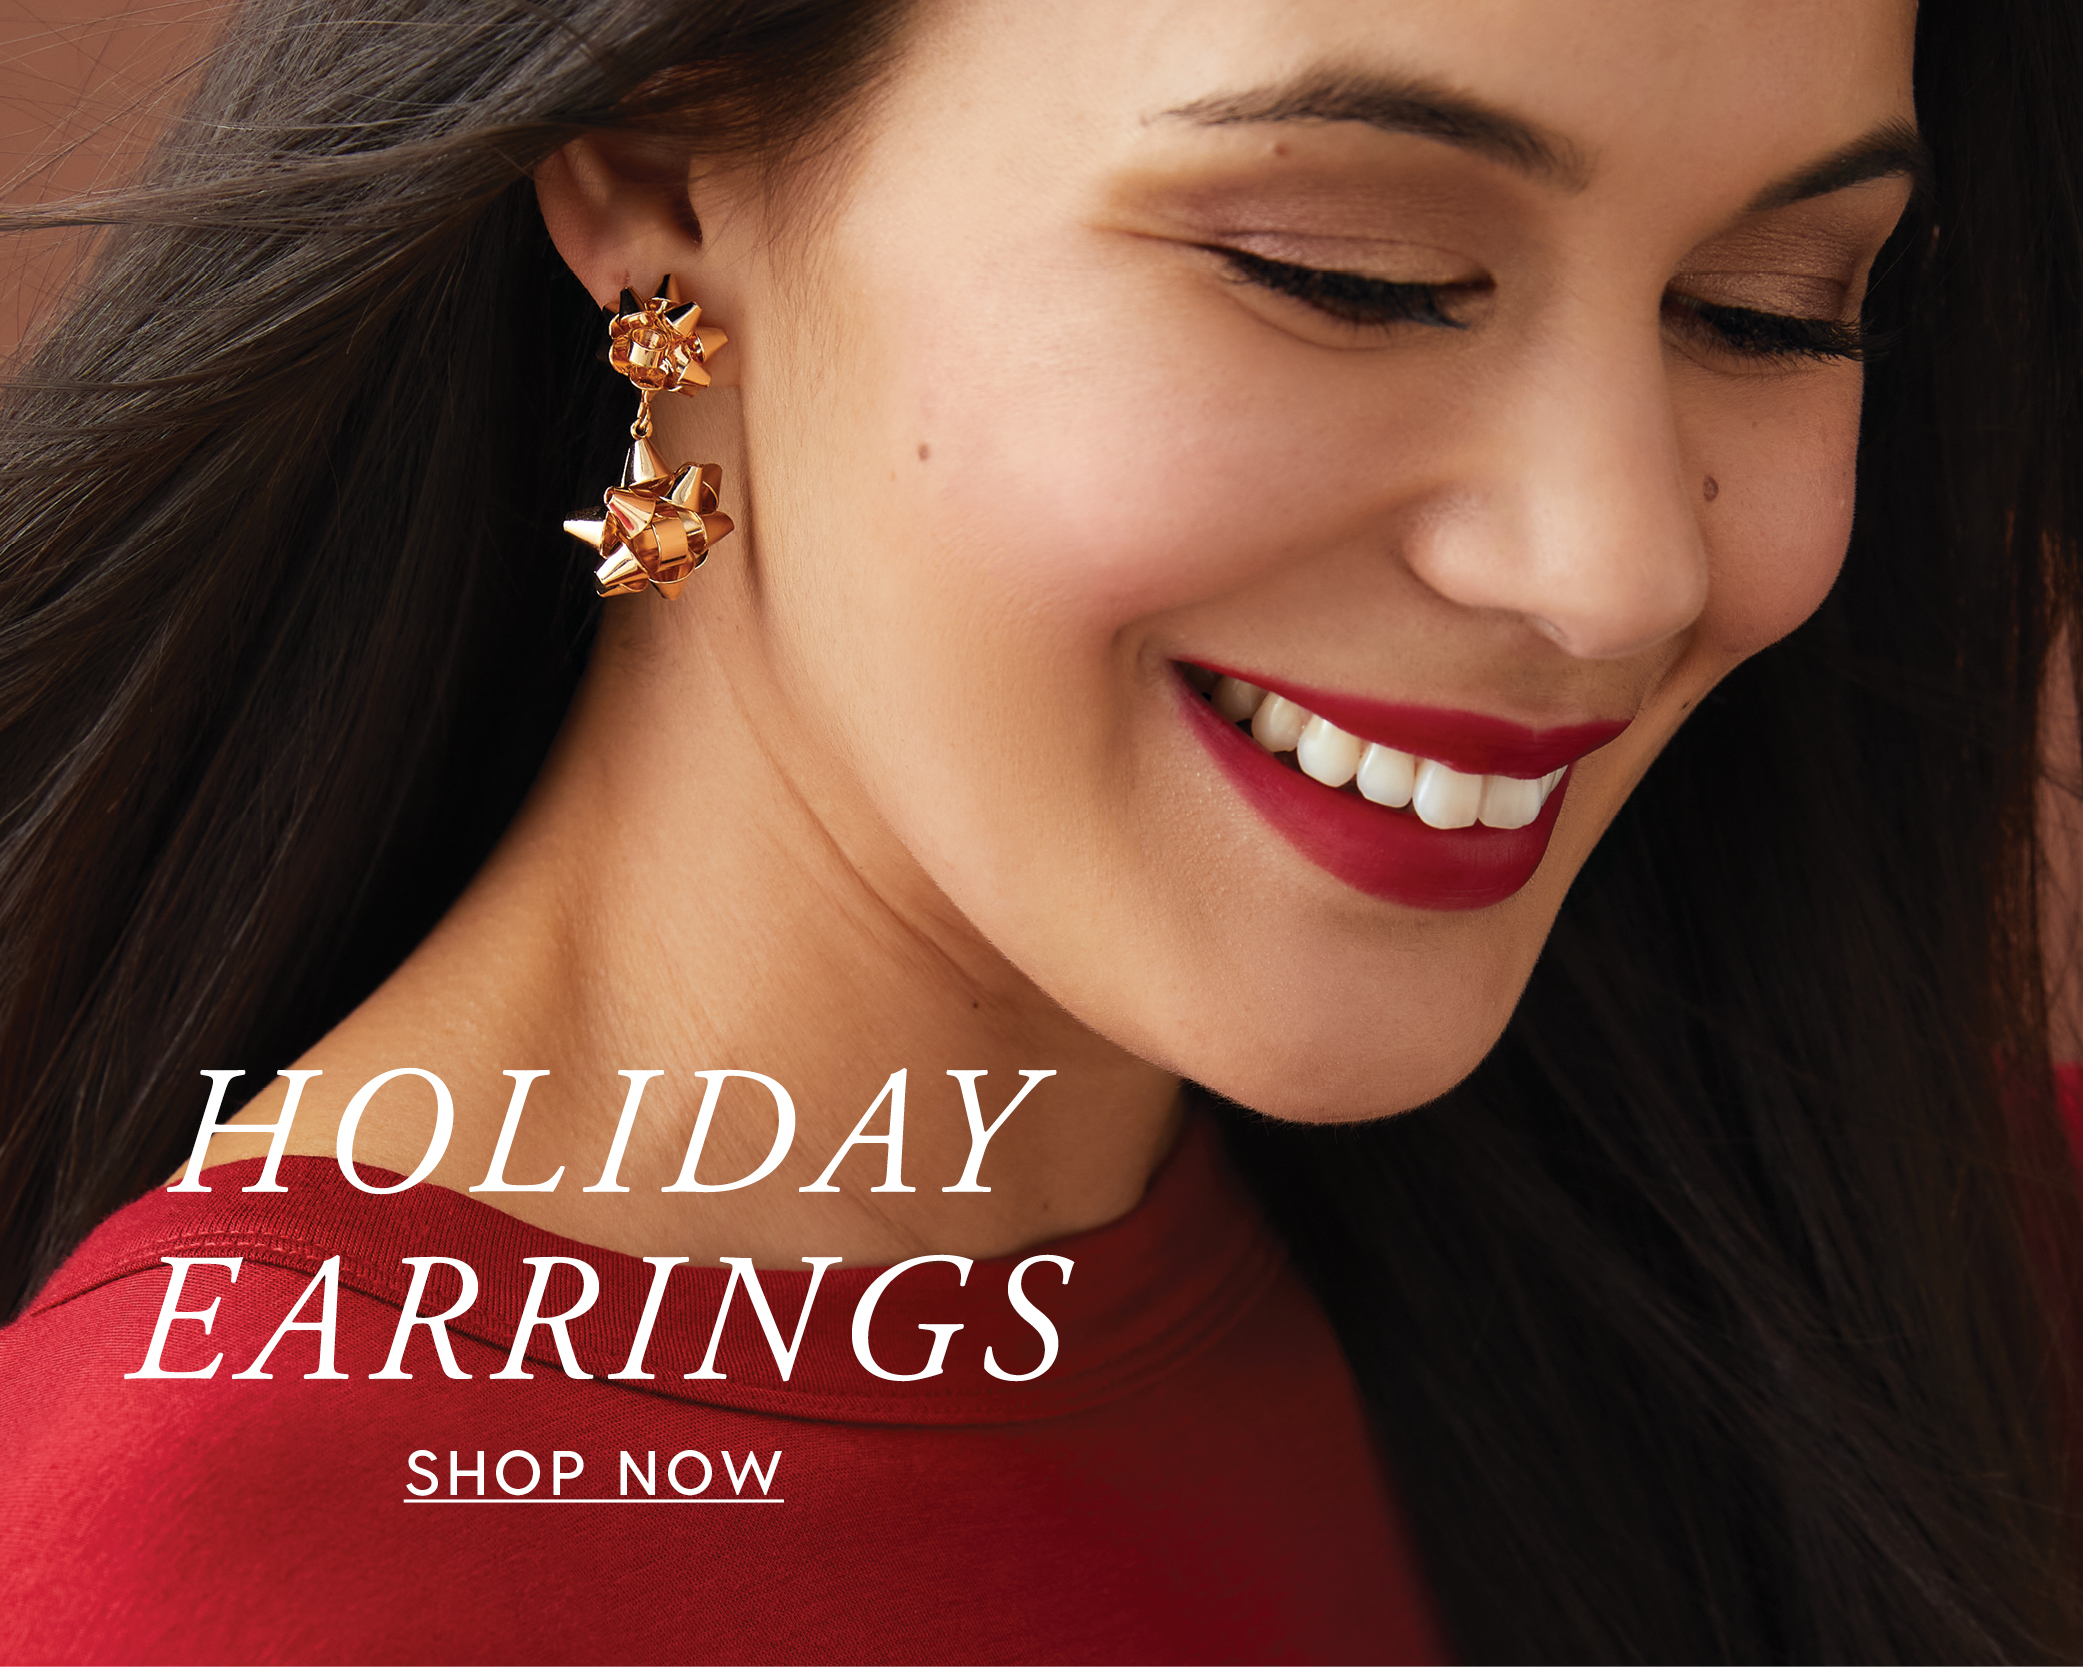 Whispers Holiday Earrings